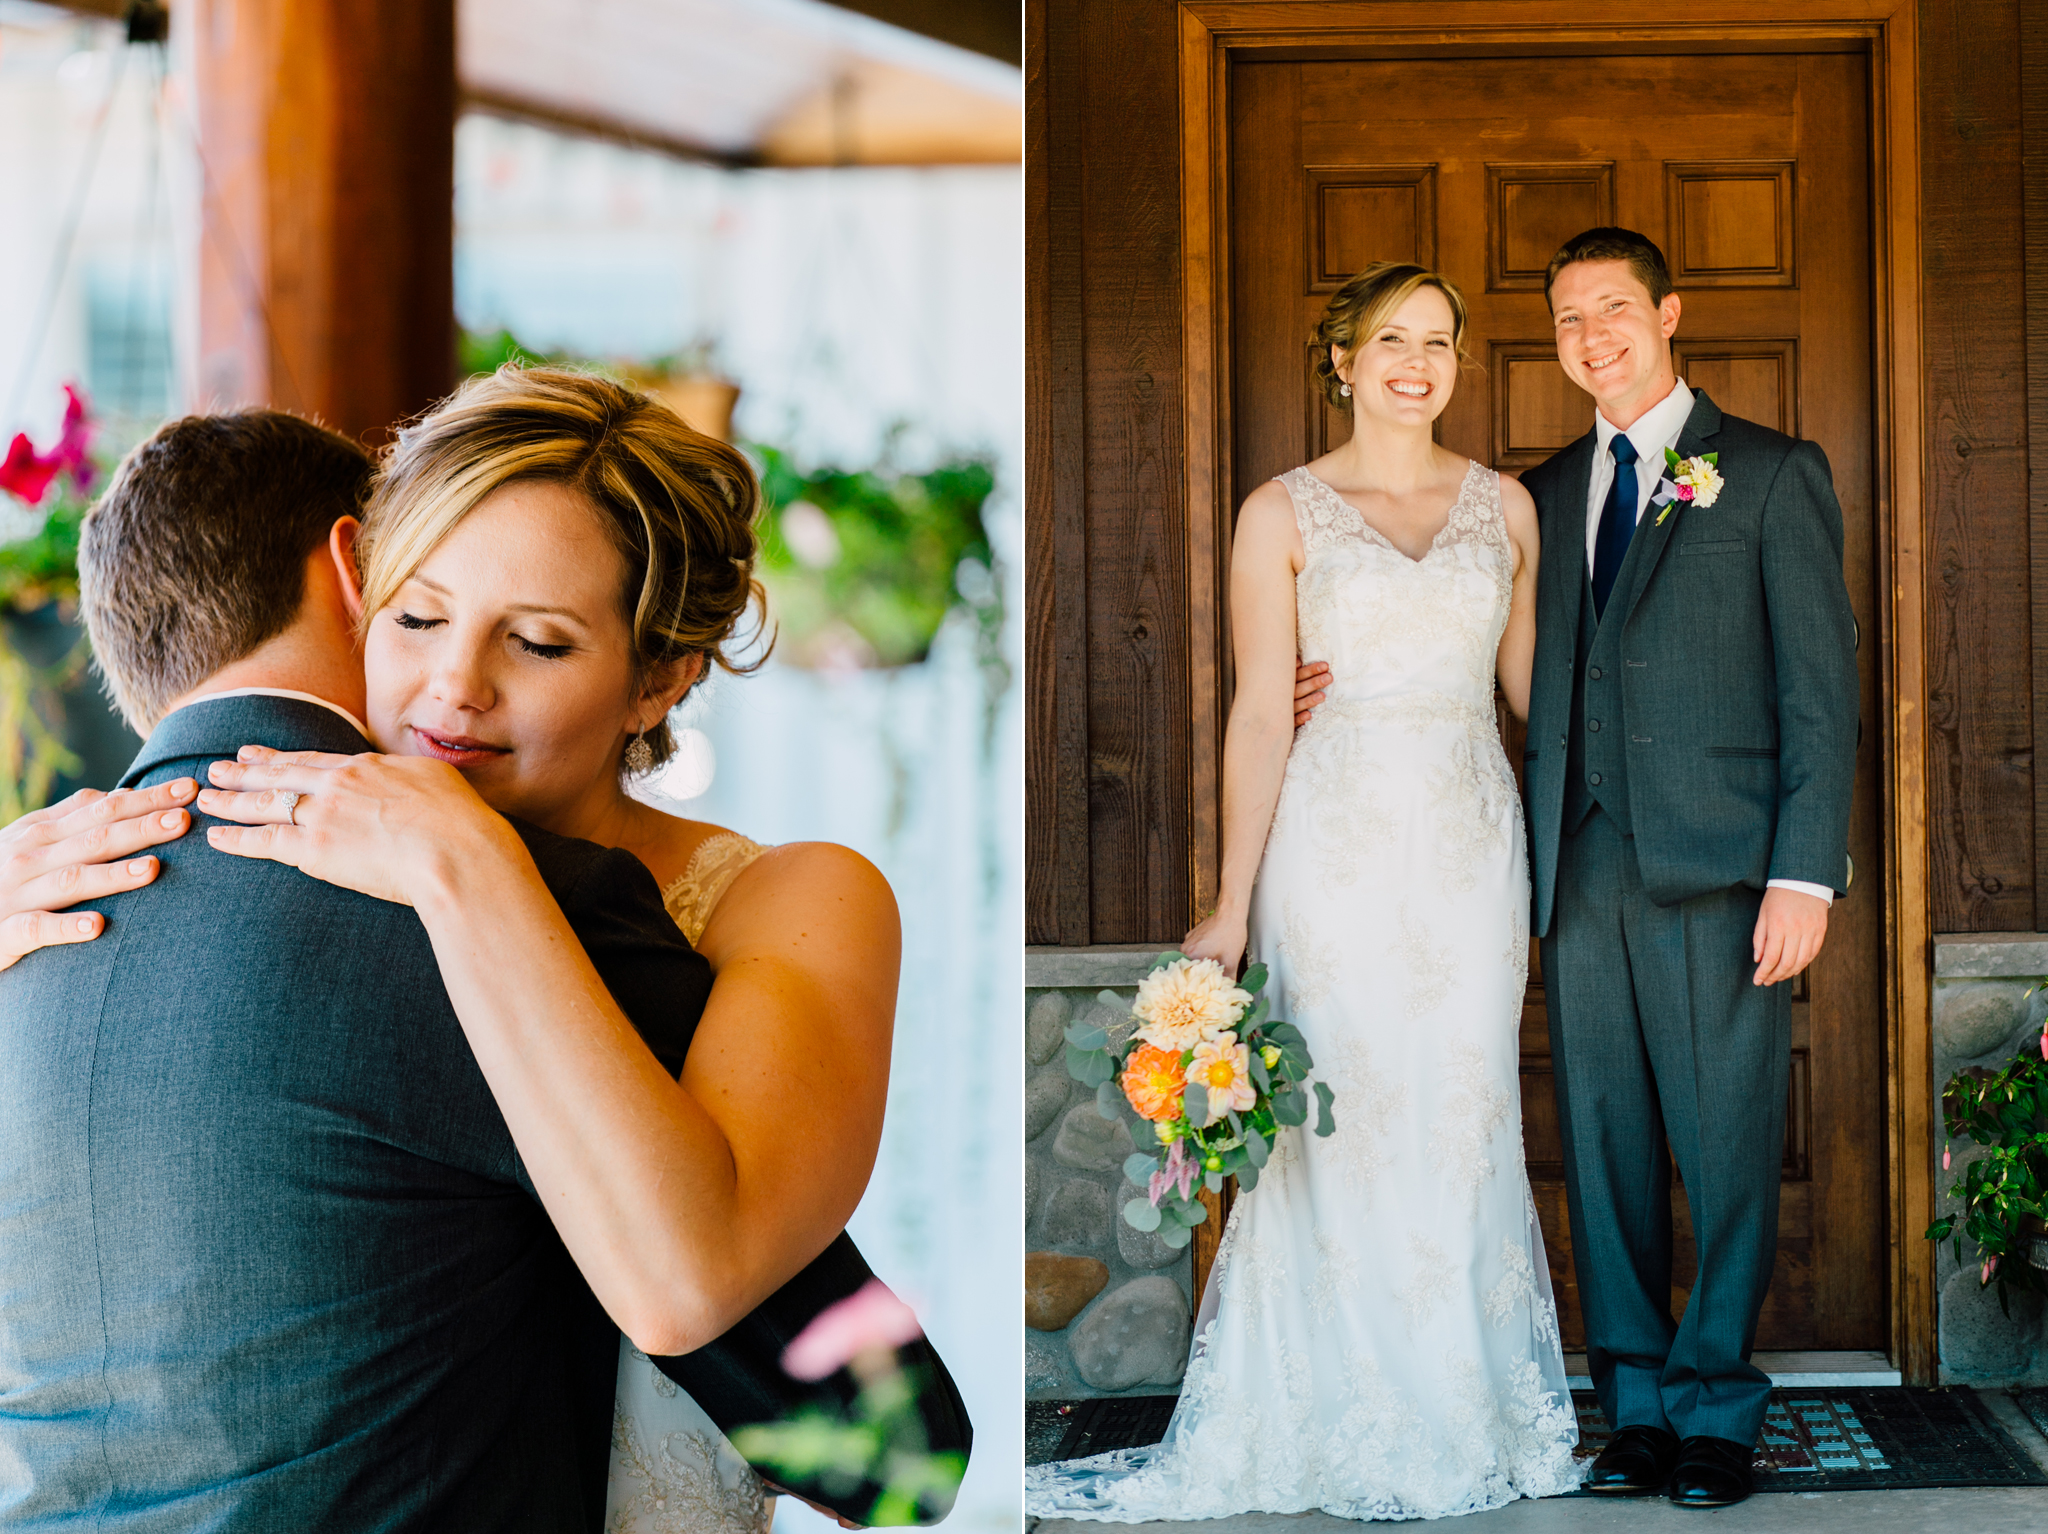 018-bellingham-wedding-photographer-samson-winery-katheryn-moran.jpg